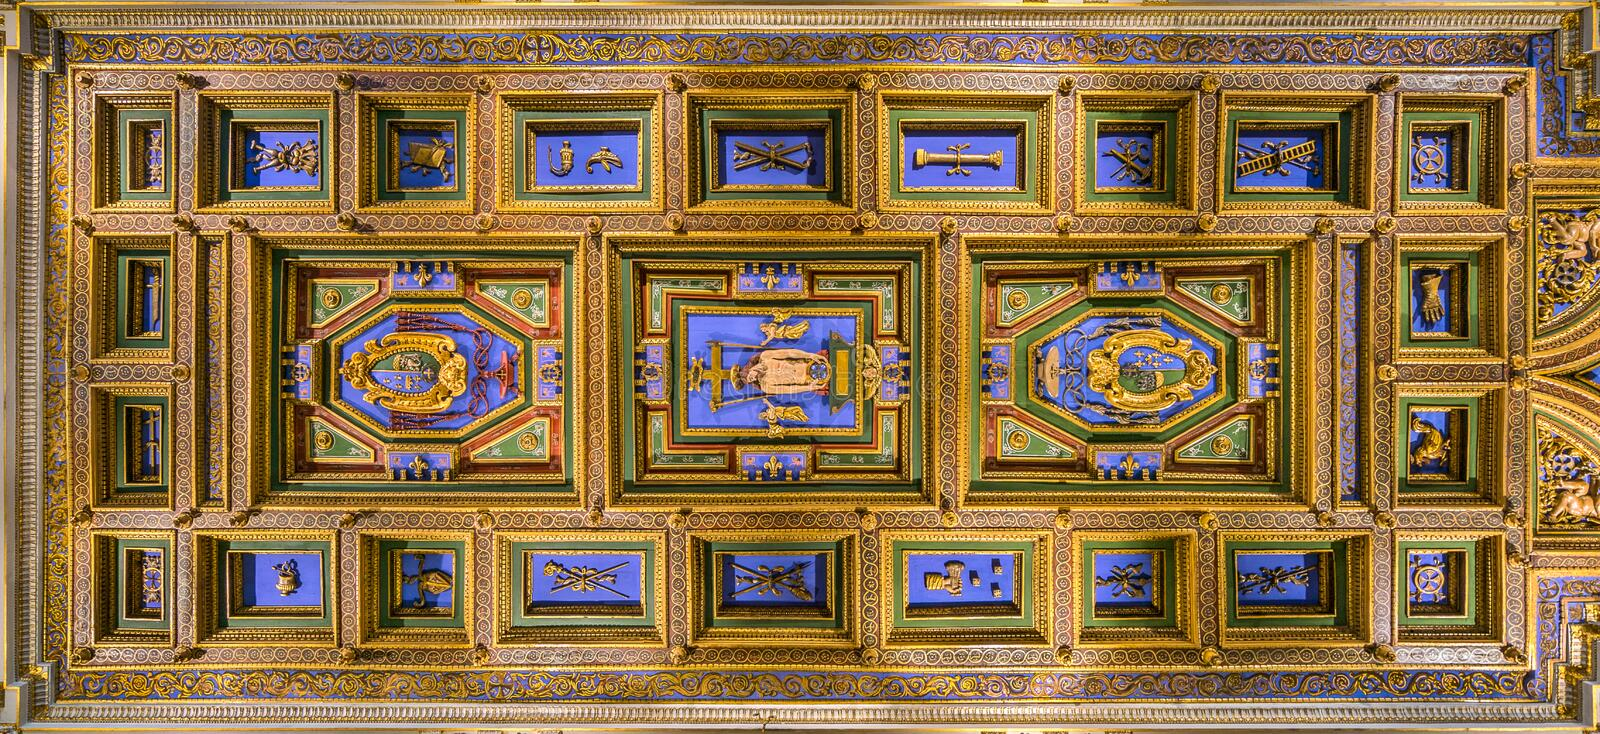 Coffered vault in the Church of San Girolamo della Carità in Rome, Italy. San Girolamo della Carità is a church in Rome, Italy, located near the Palazzo stock images